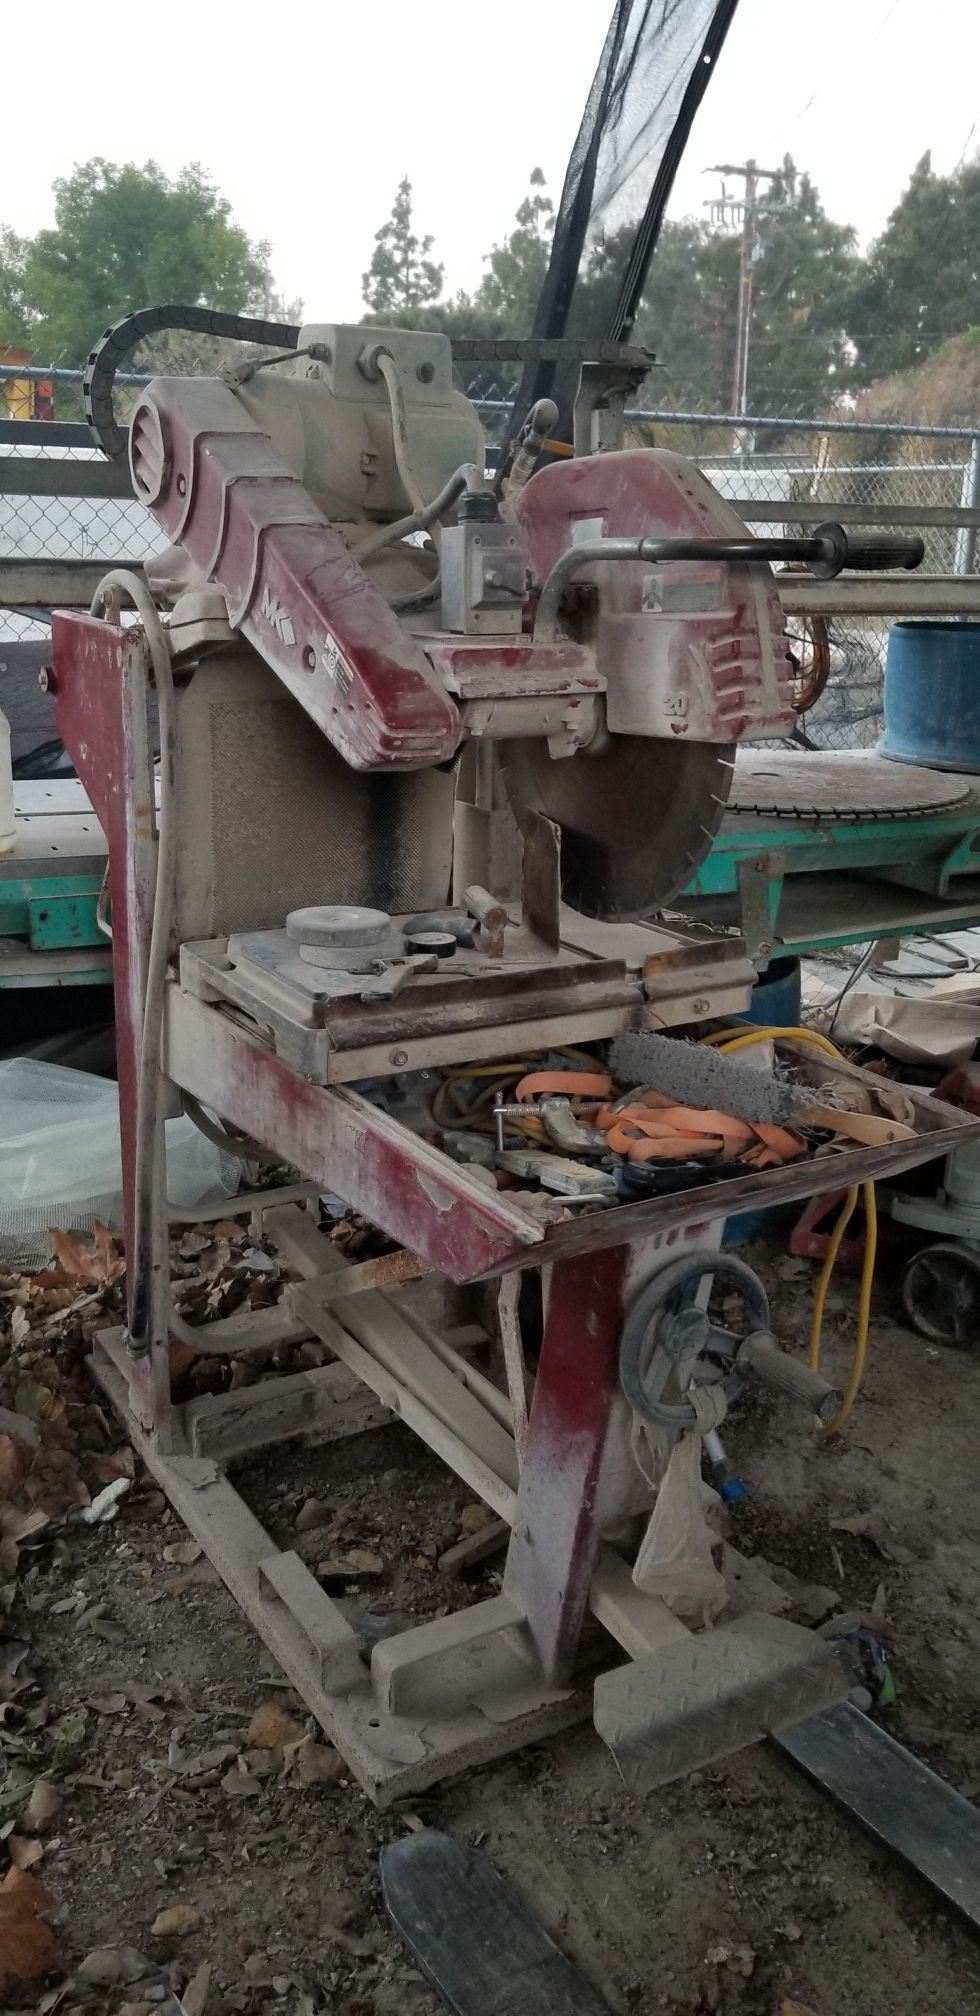 Cutting machine for tile or stone